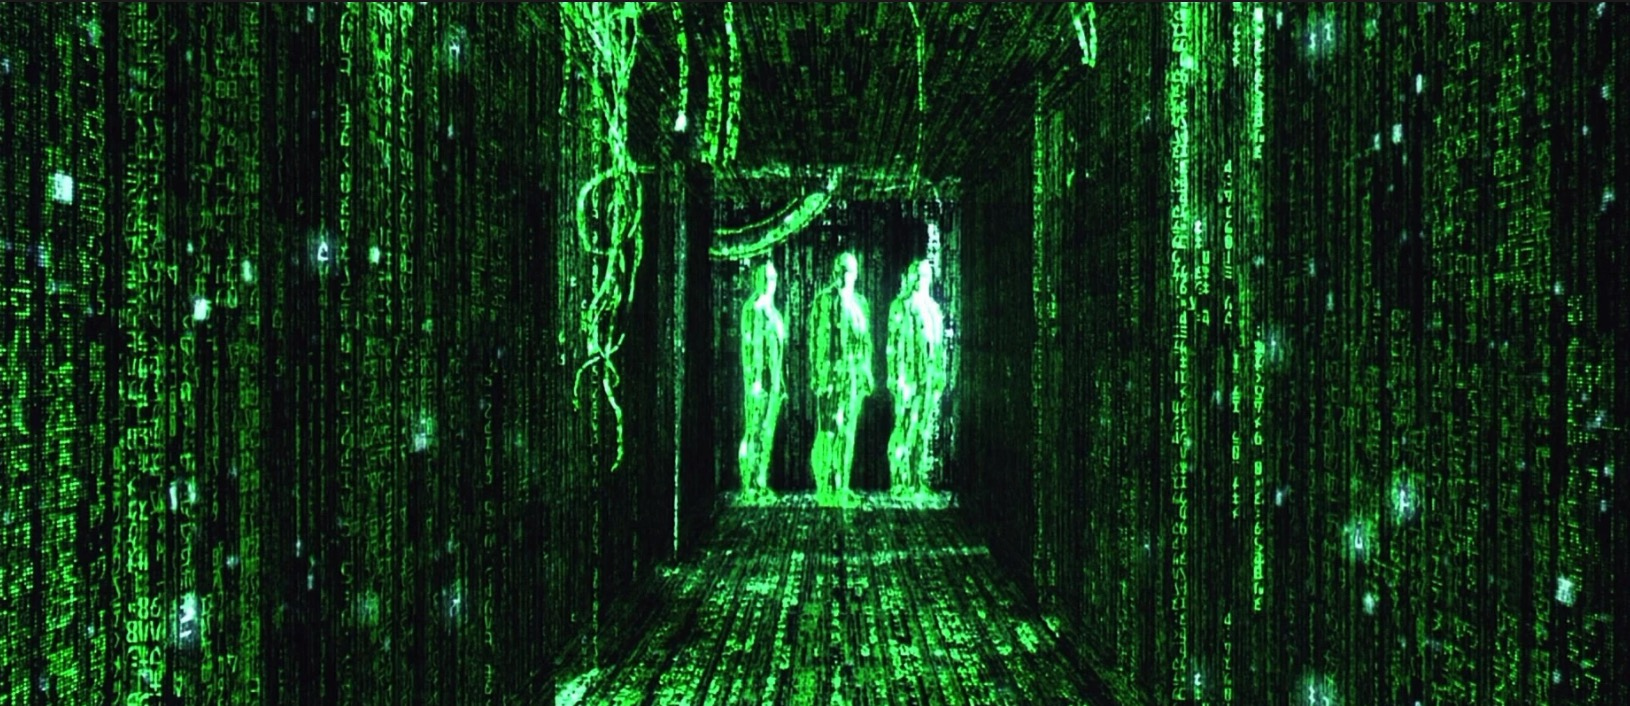 Film Company Warner Bros. can return to the Matrix